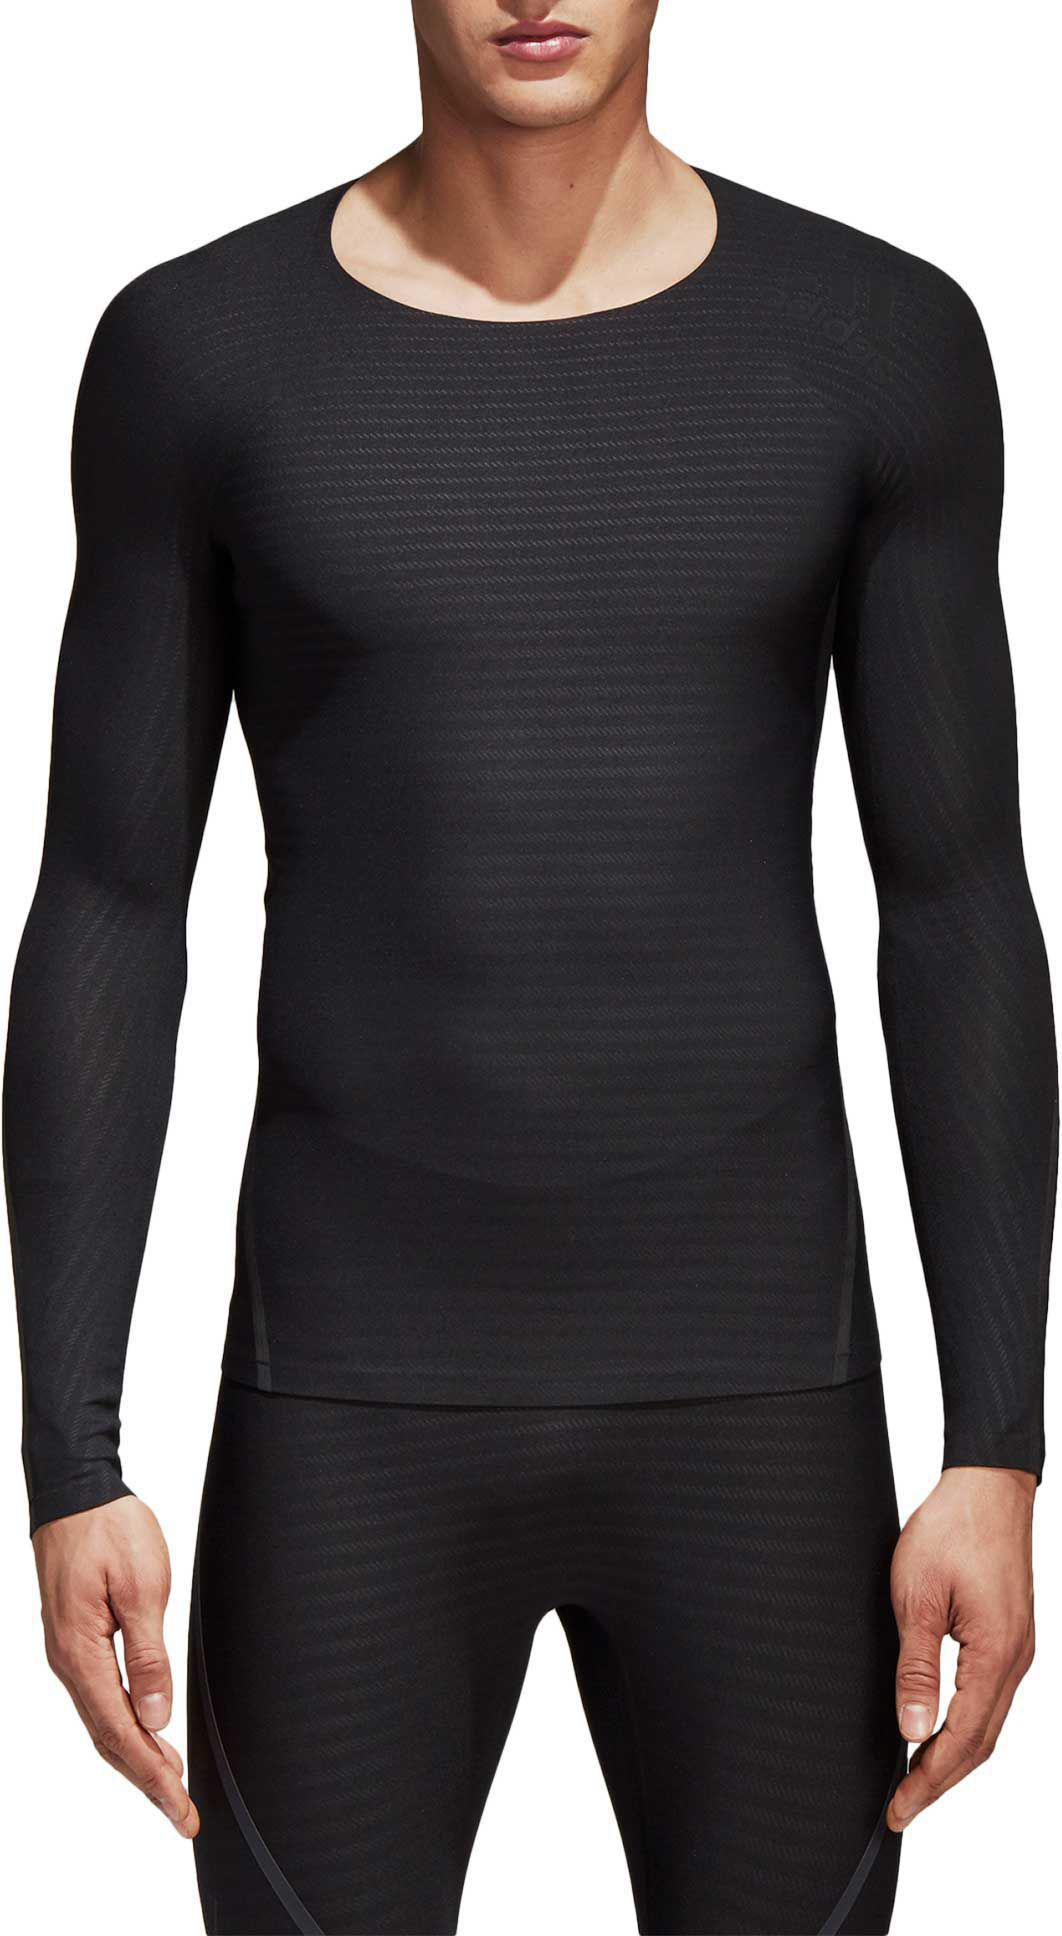 5922bf19bf7d1 Lyst - adidas Alphaskin 360 Long Sleeve Shirt in Black for Men ...